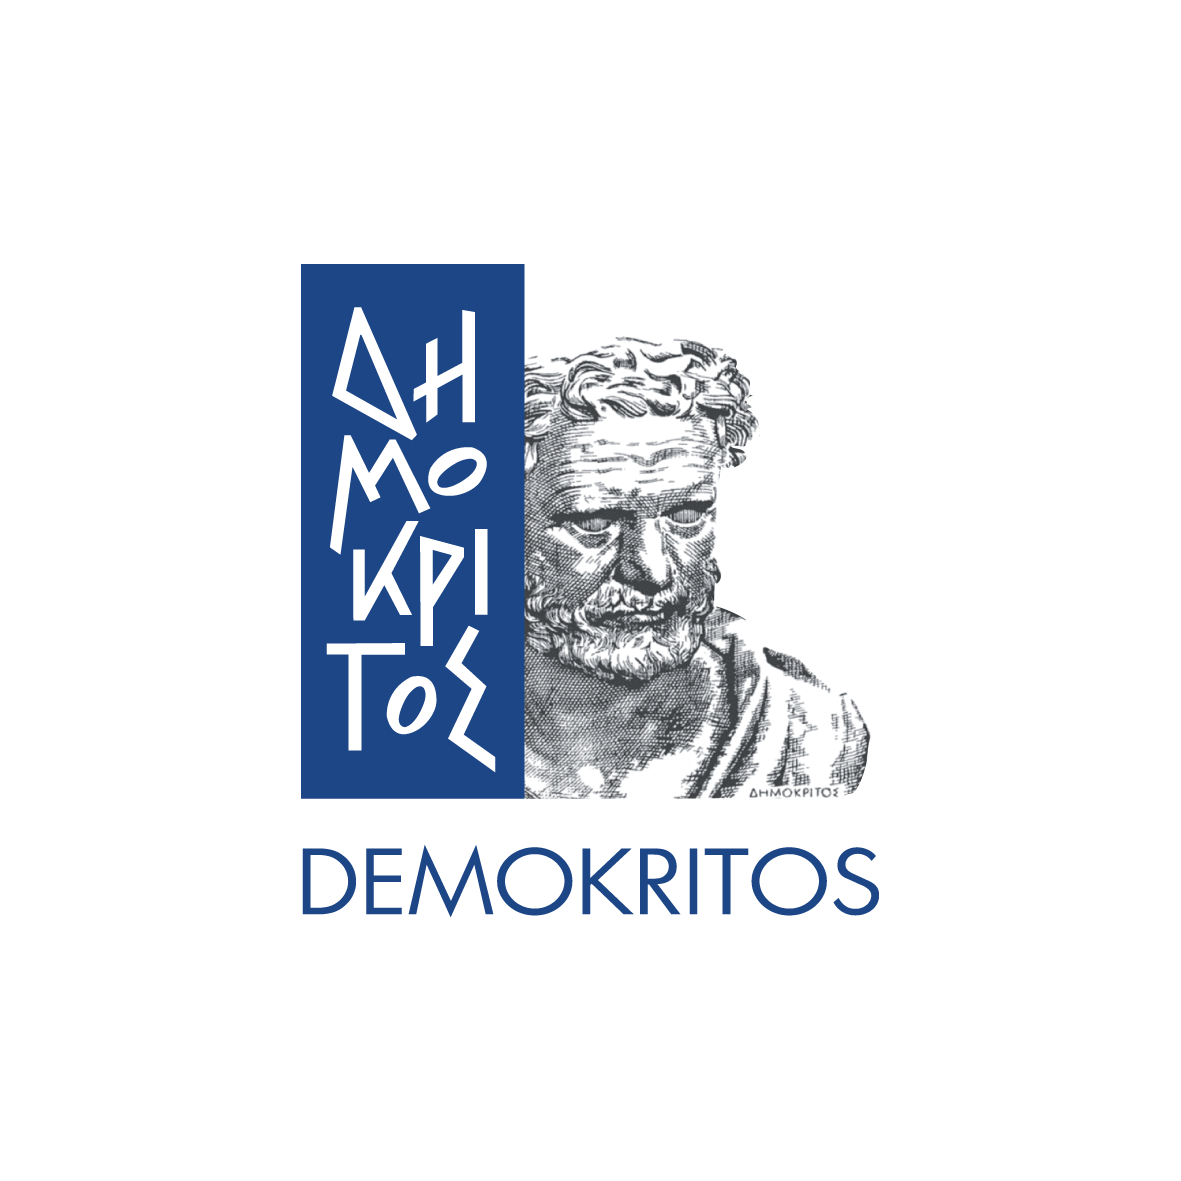 Logo_demokritos_diafano_blue